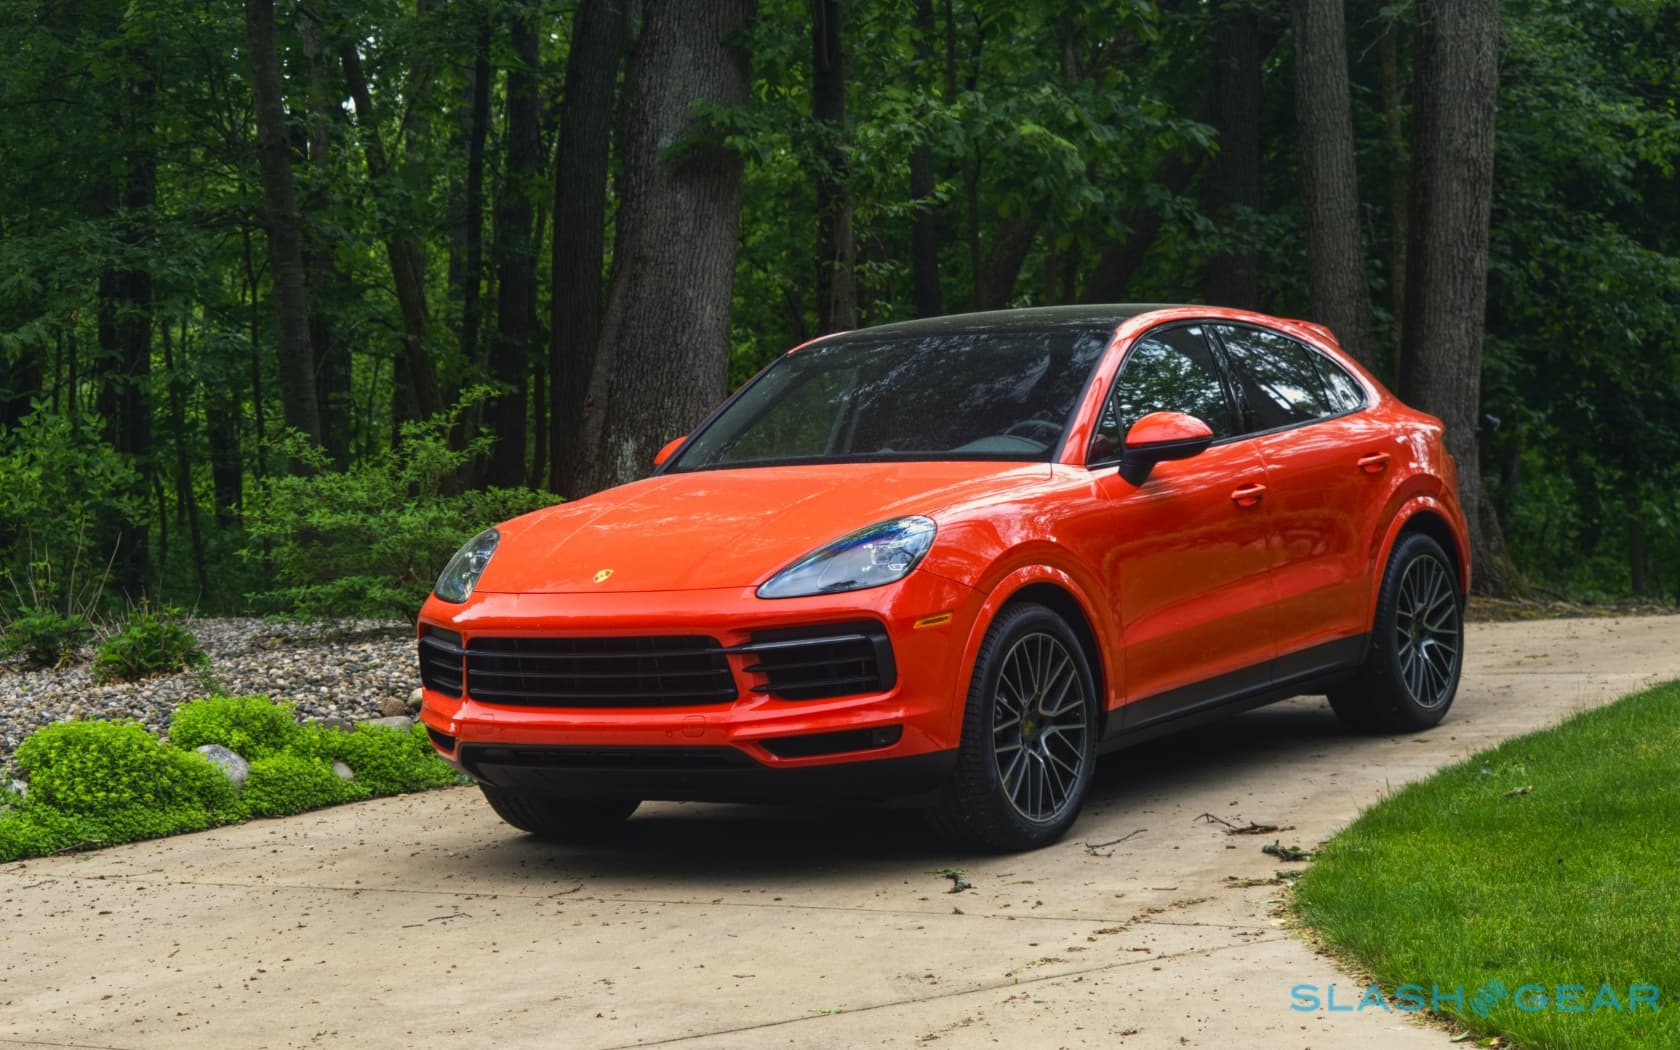 2020 Porsche Cayenne S Coupe Review Slashgear